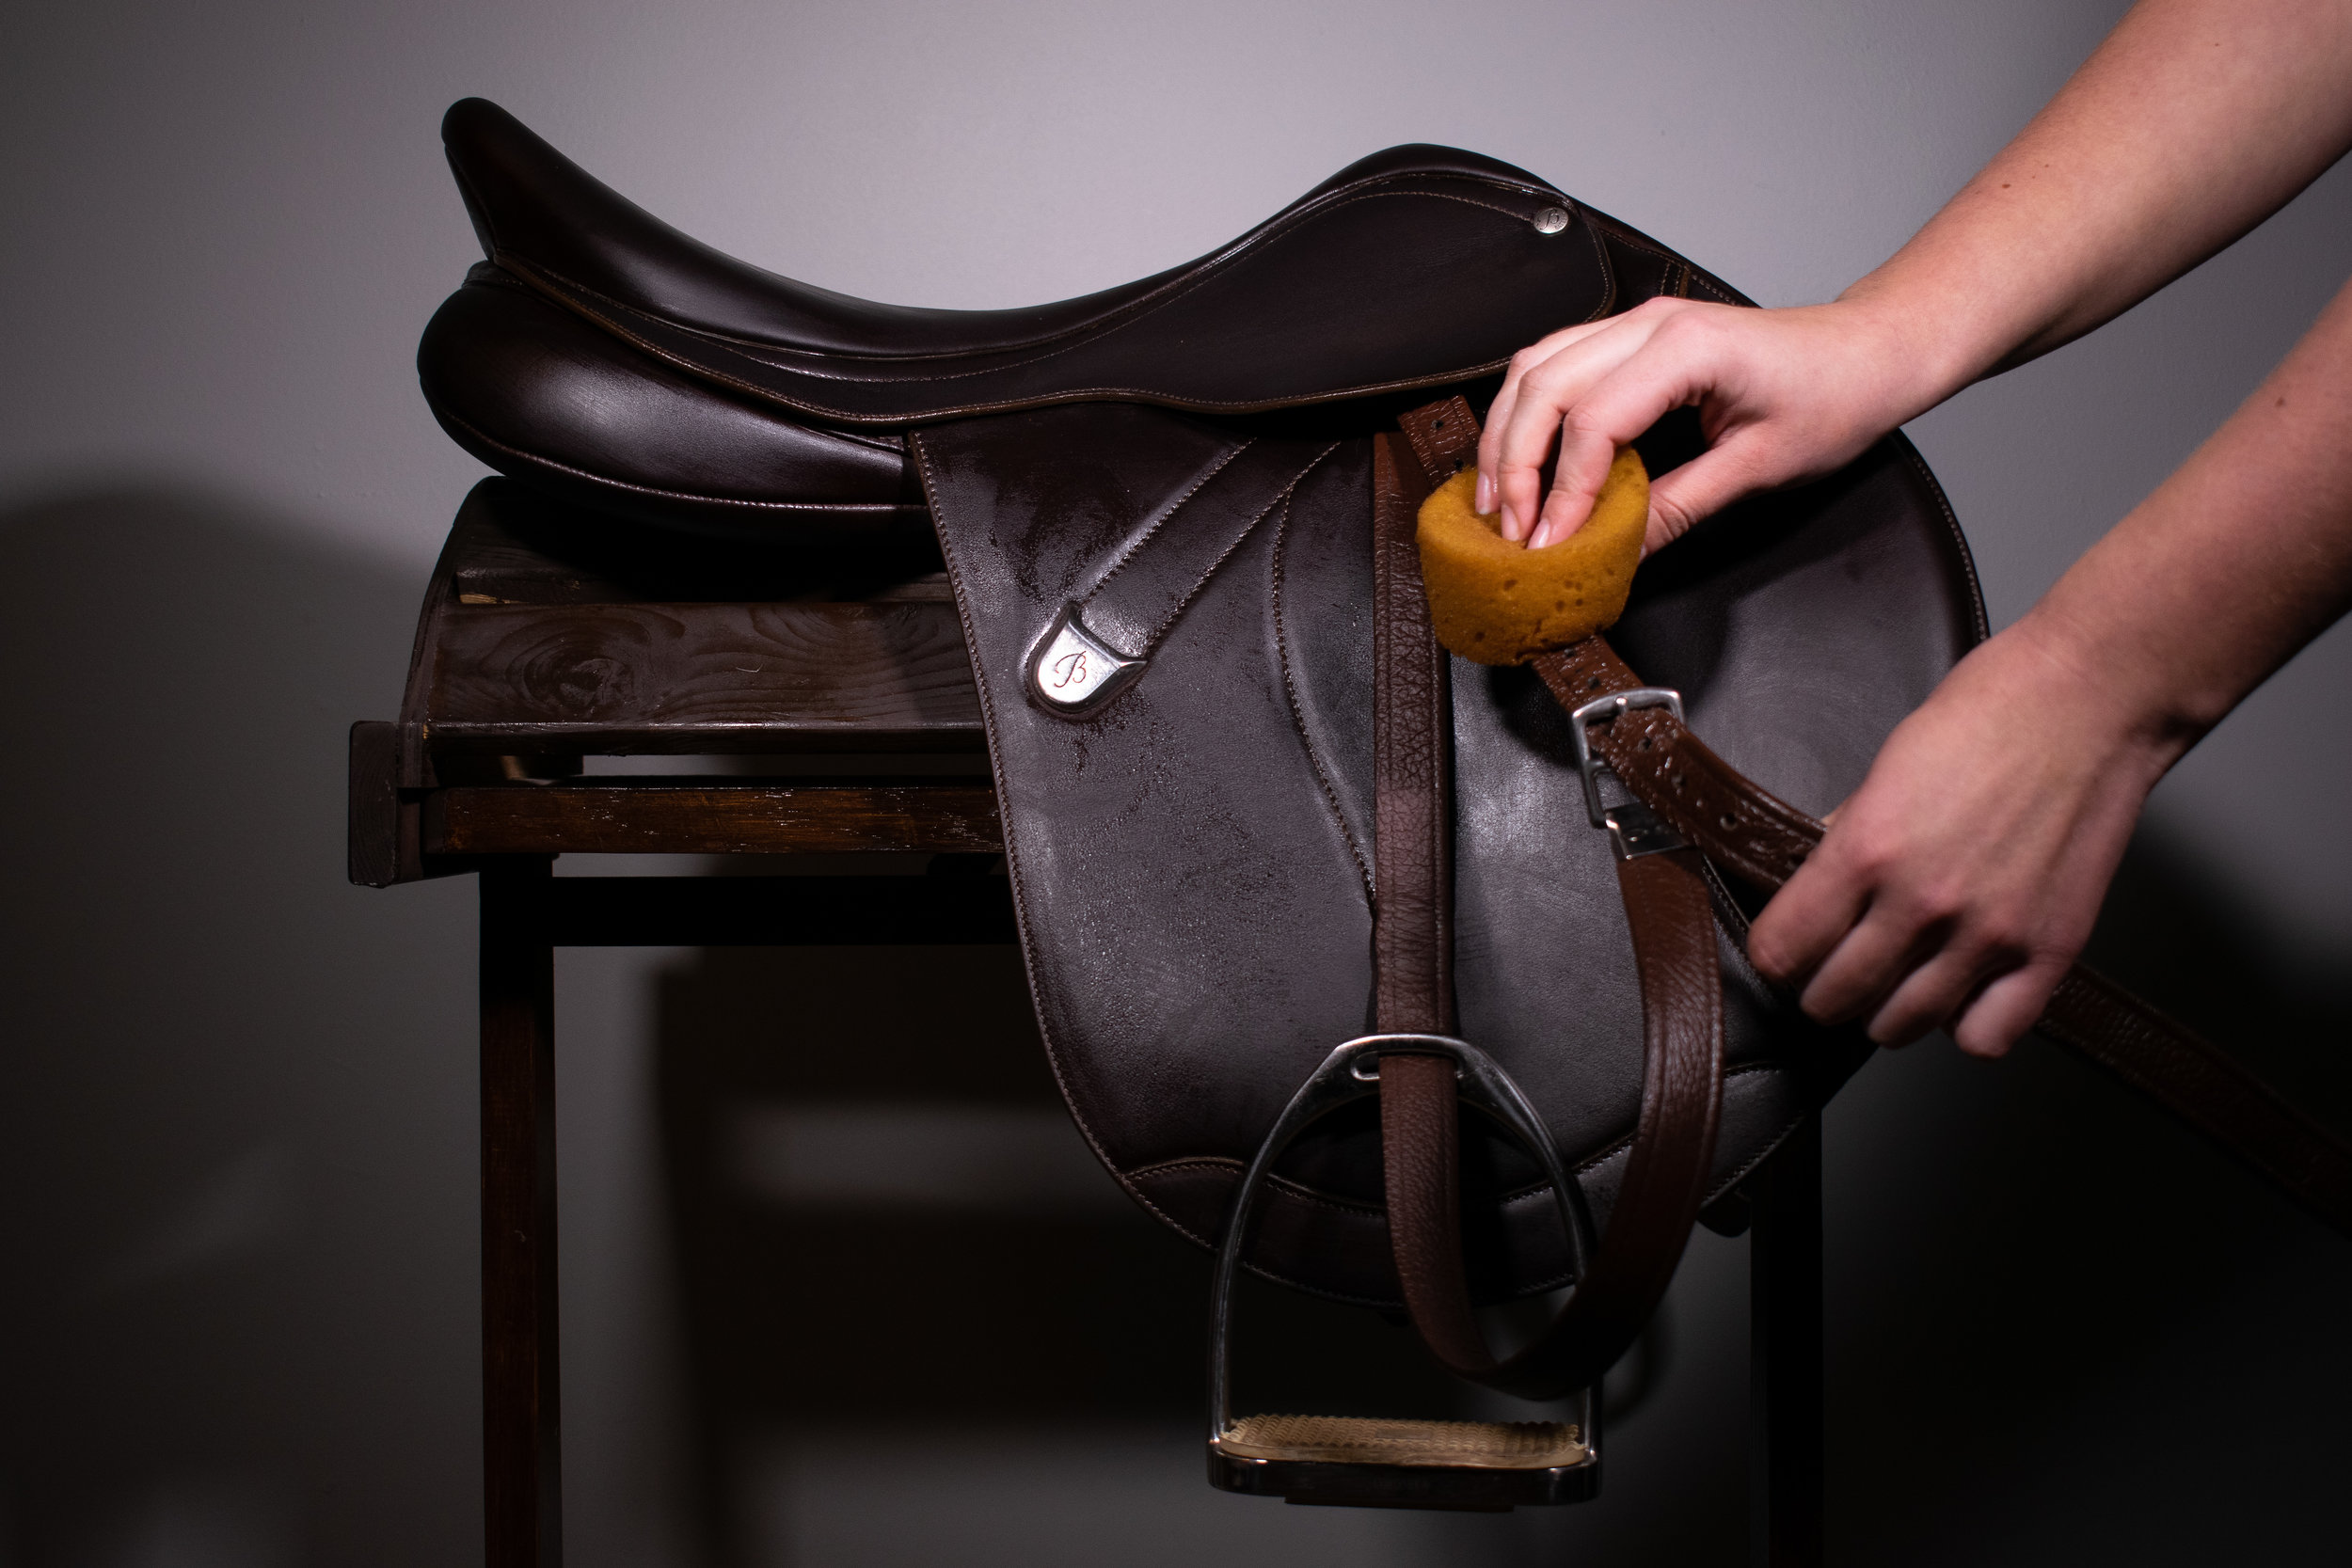 cleaning bates stirrup leathers.jpg